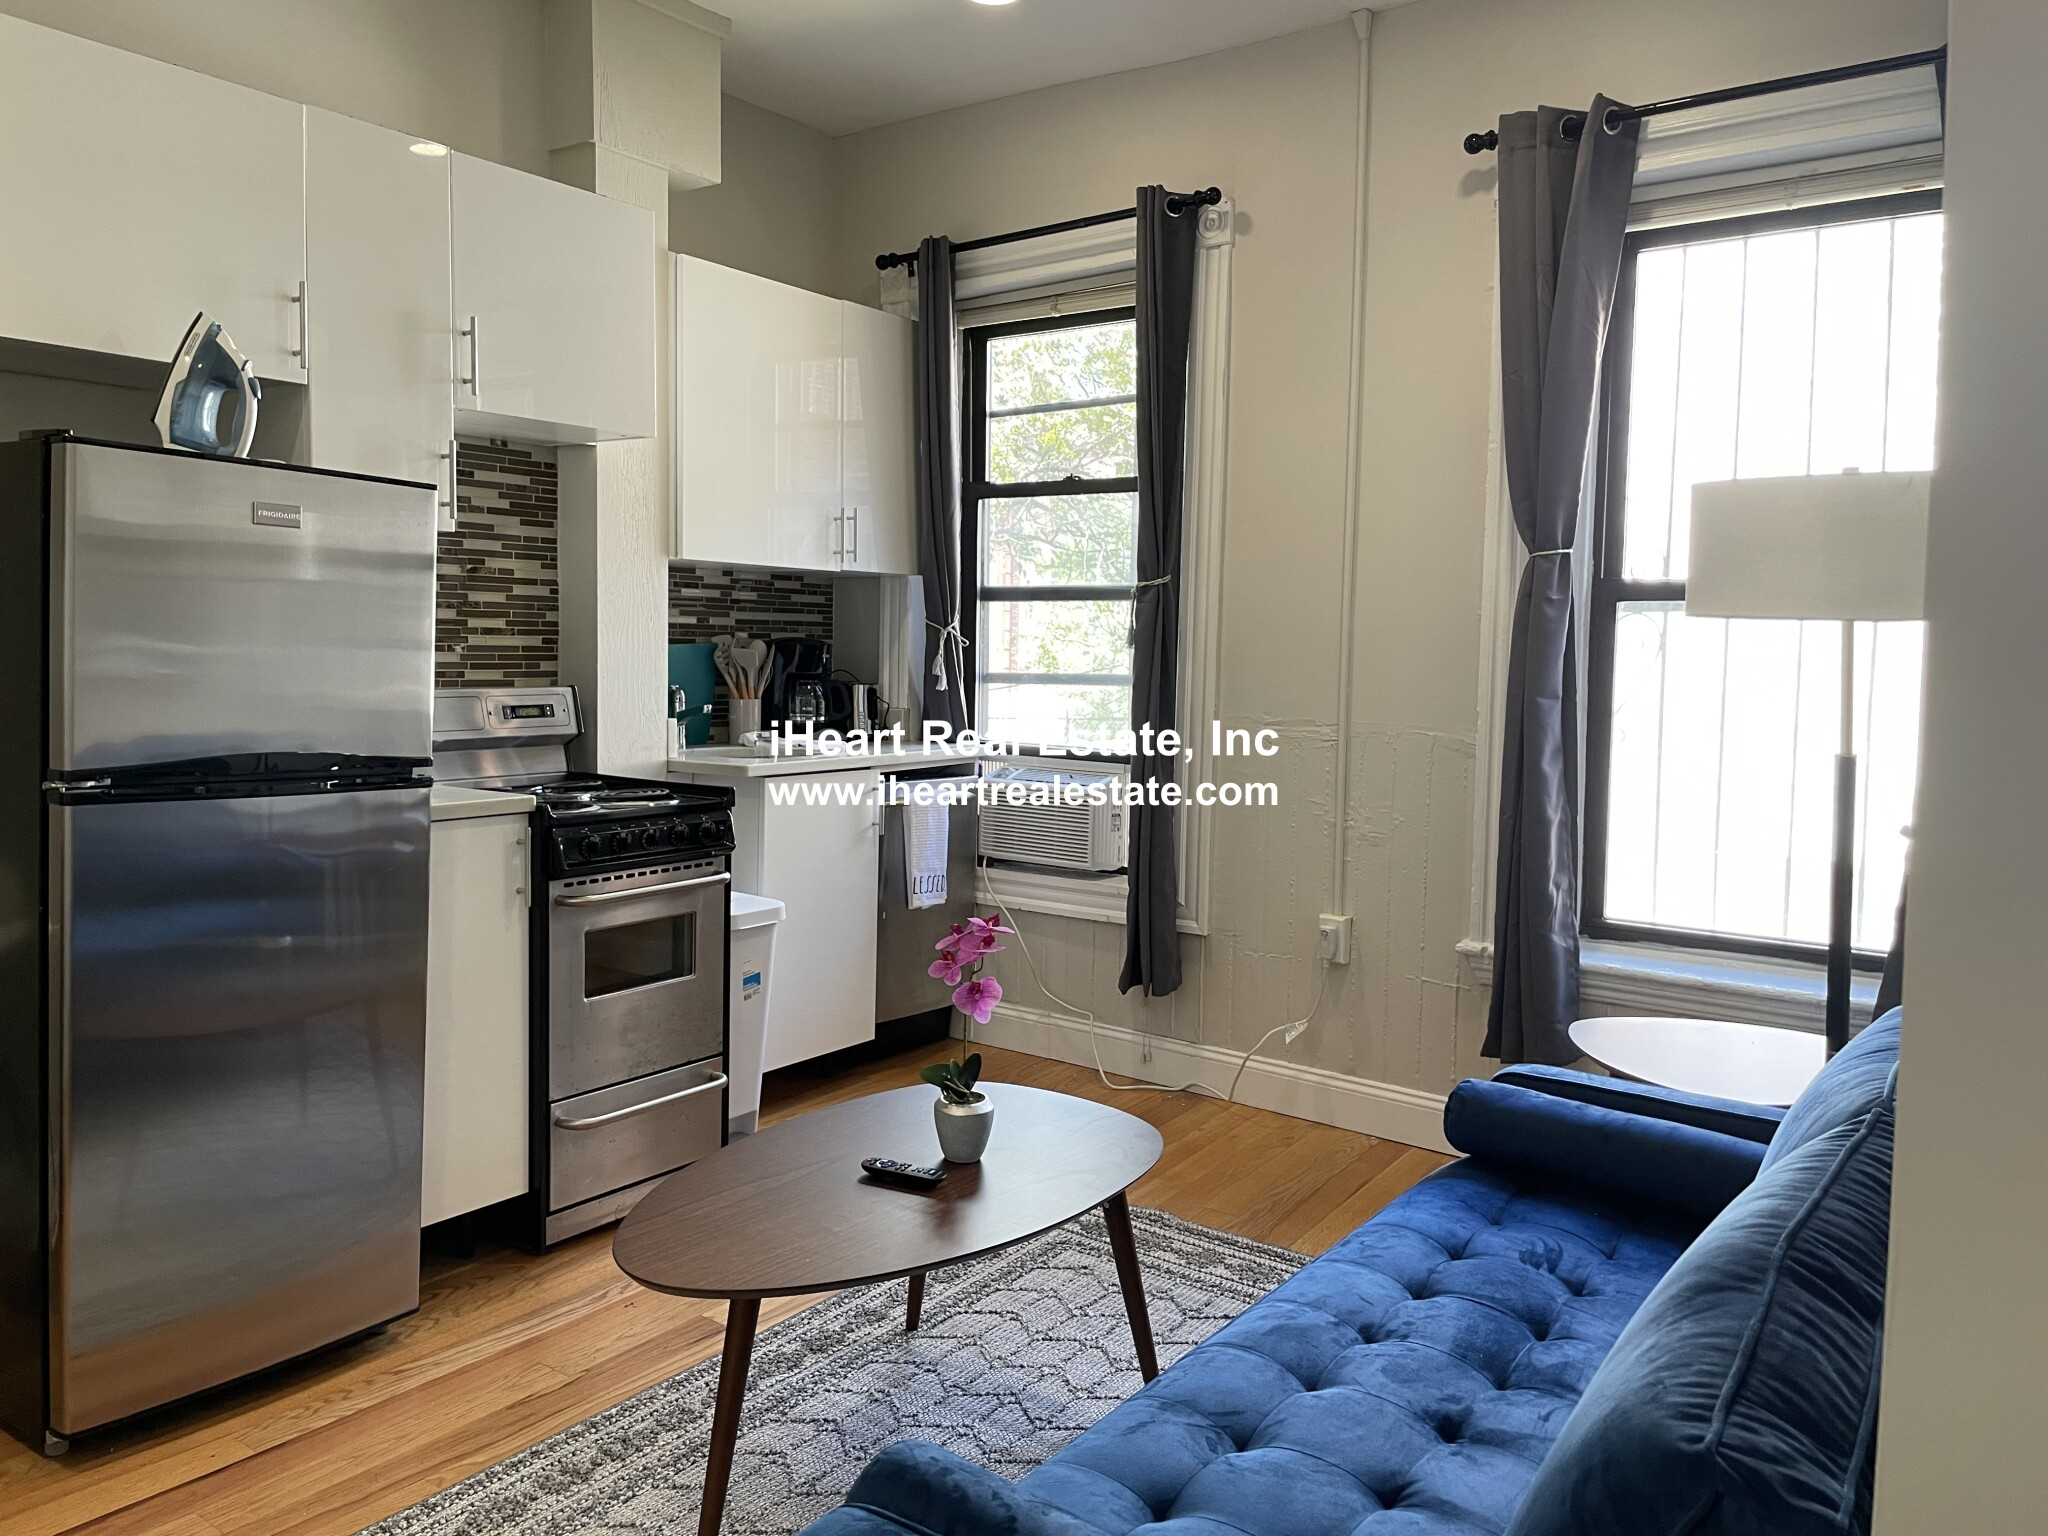 2 Beds, 1 Bath apartment in Boston, Beacon Hill for $3,650